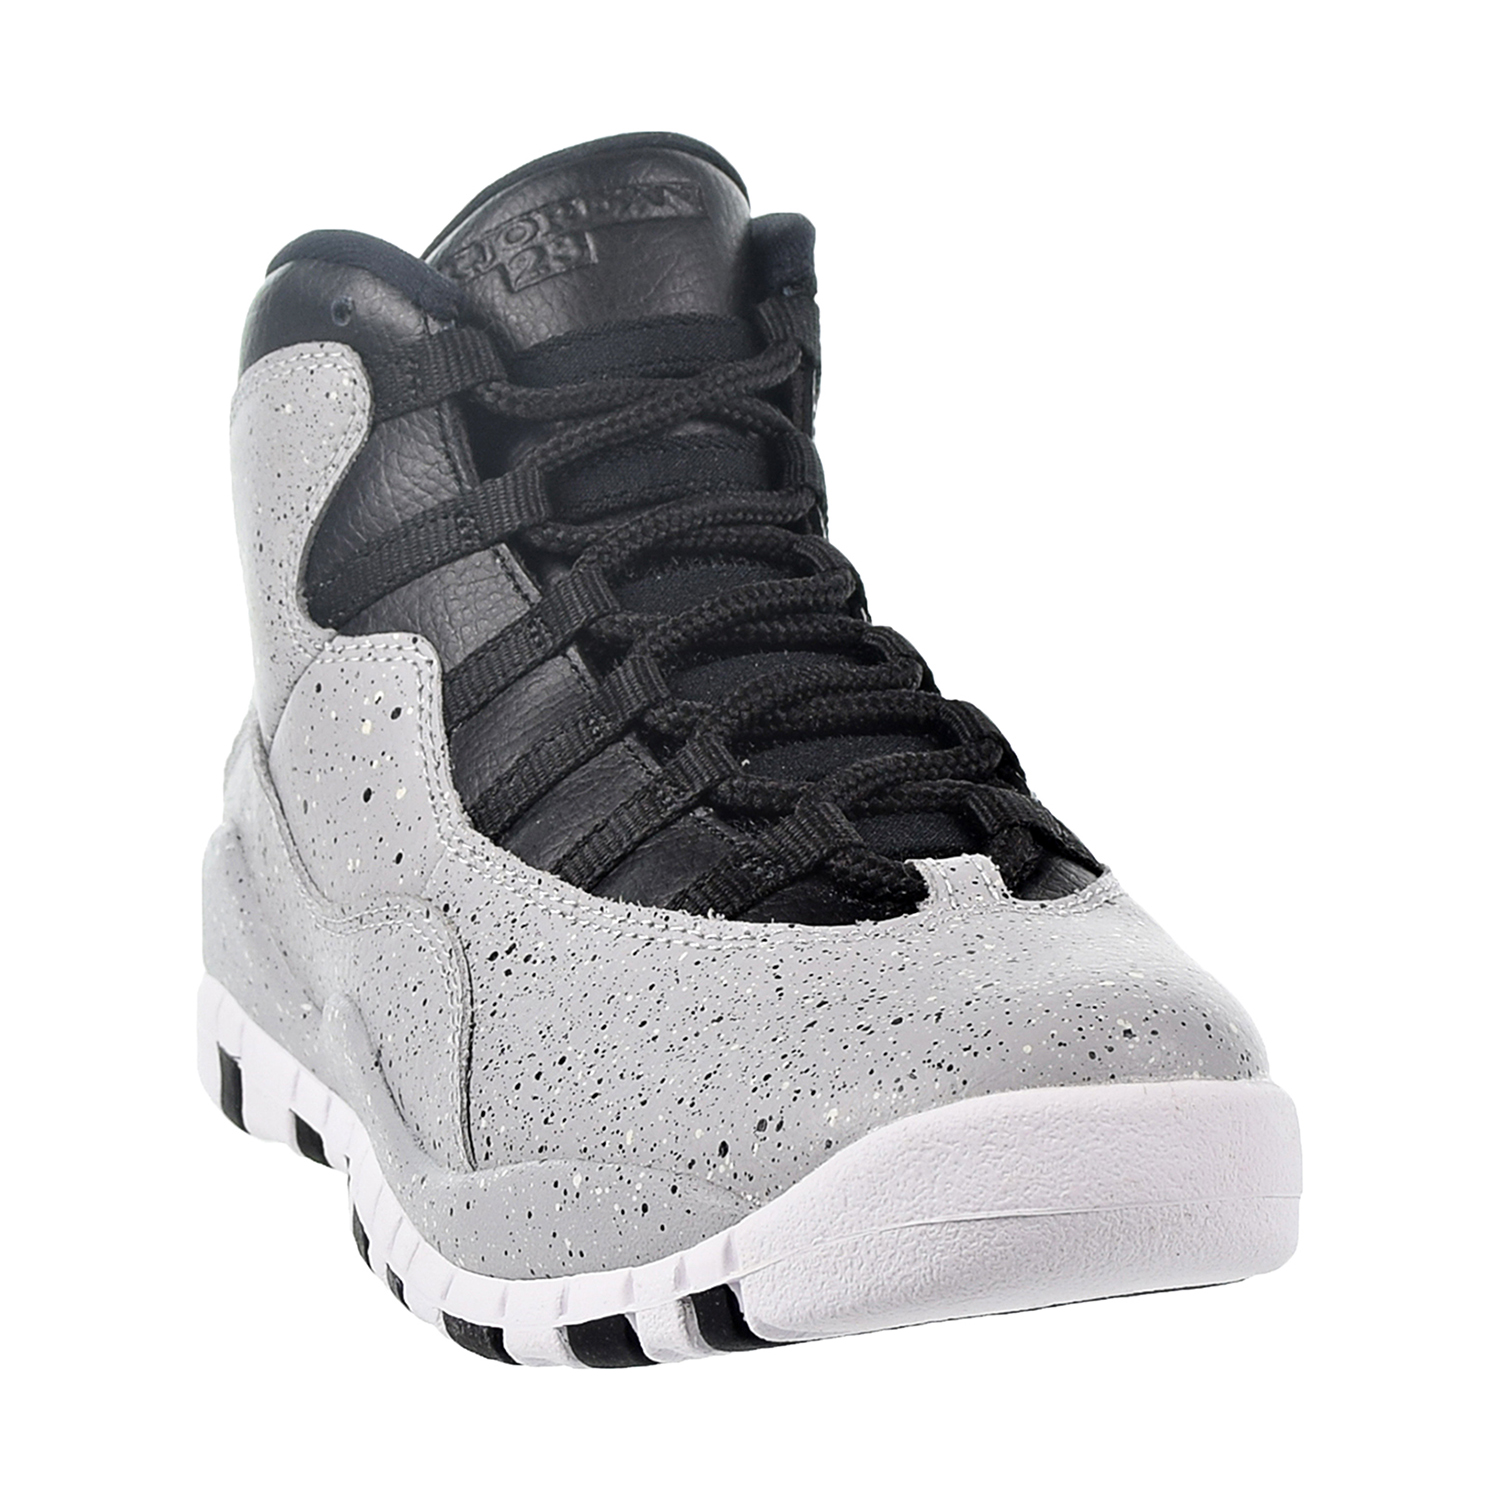 online retailer b9d15 e46f1 Nike Air Jordan 10 Retro Big Kid s Shoe Light Smoke Grey Black 310806-062